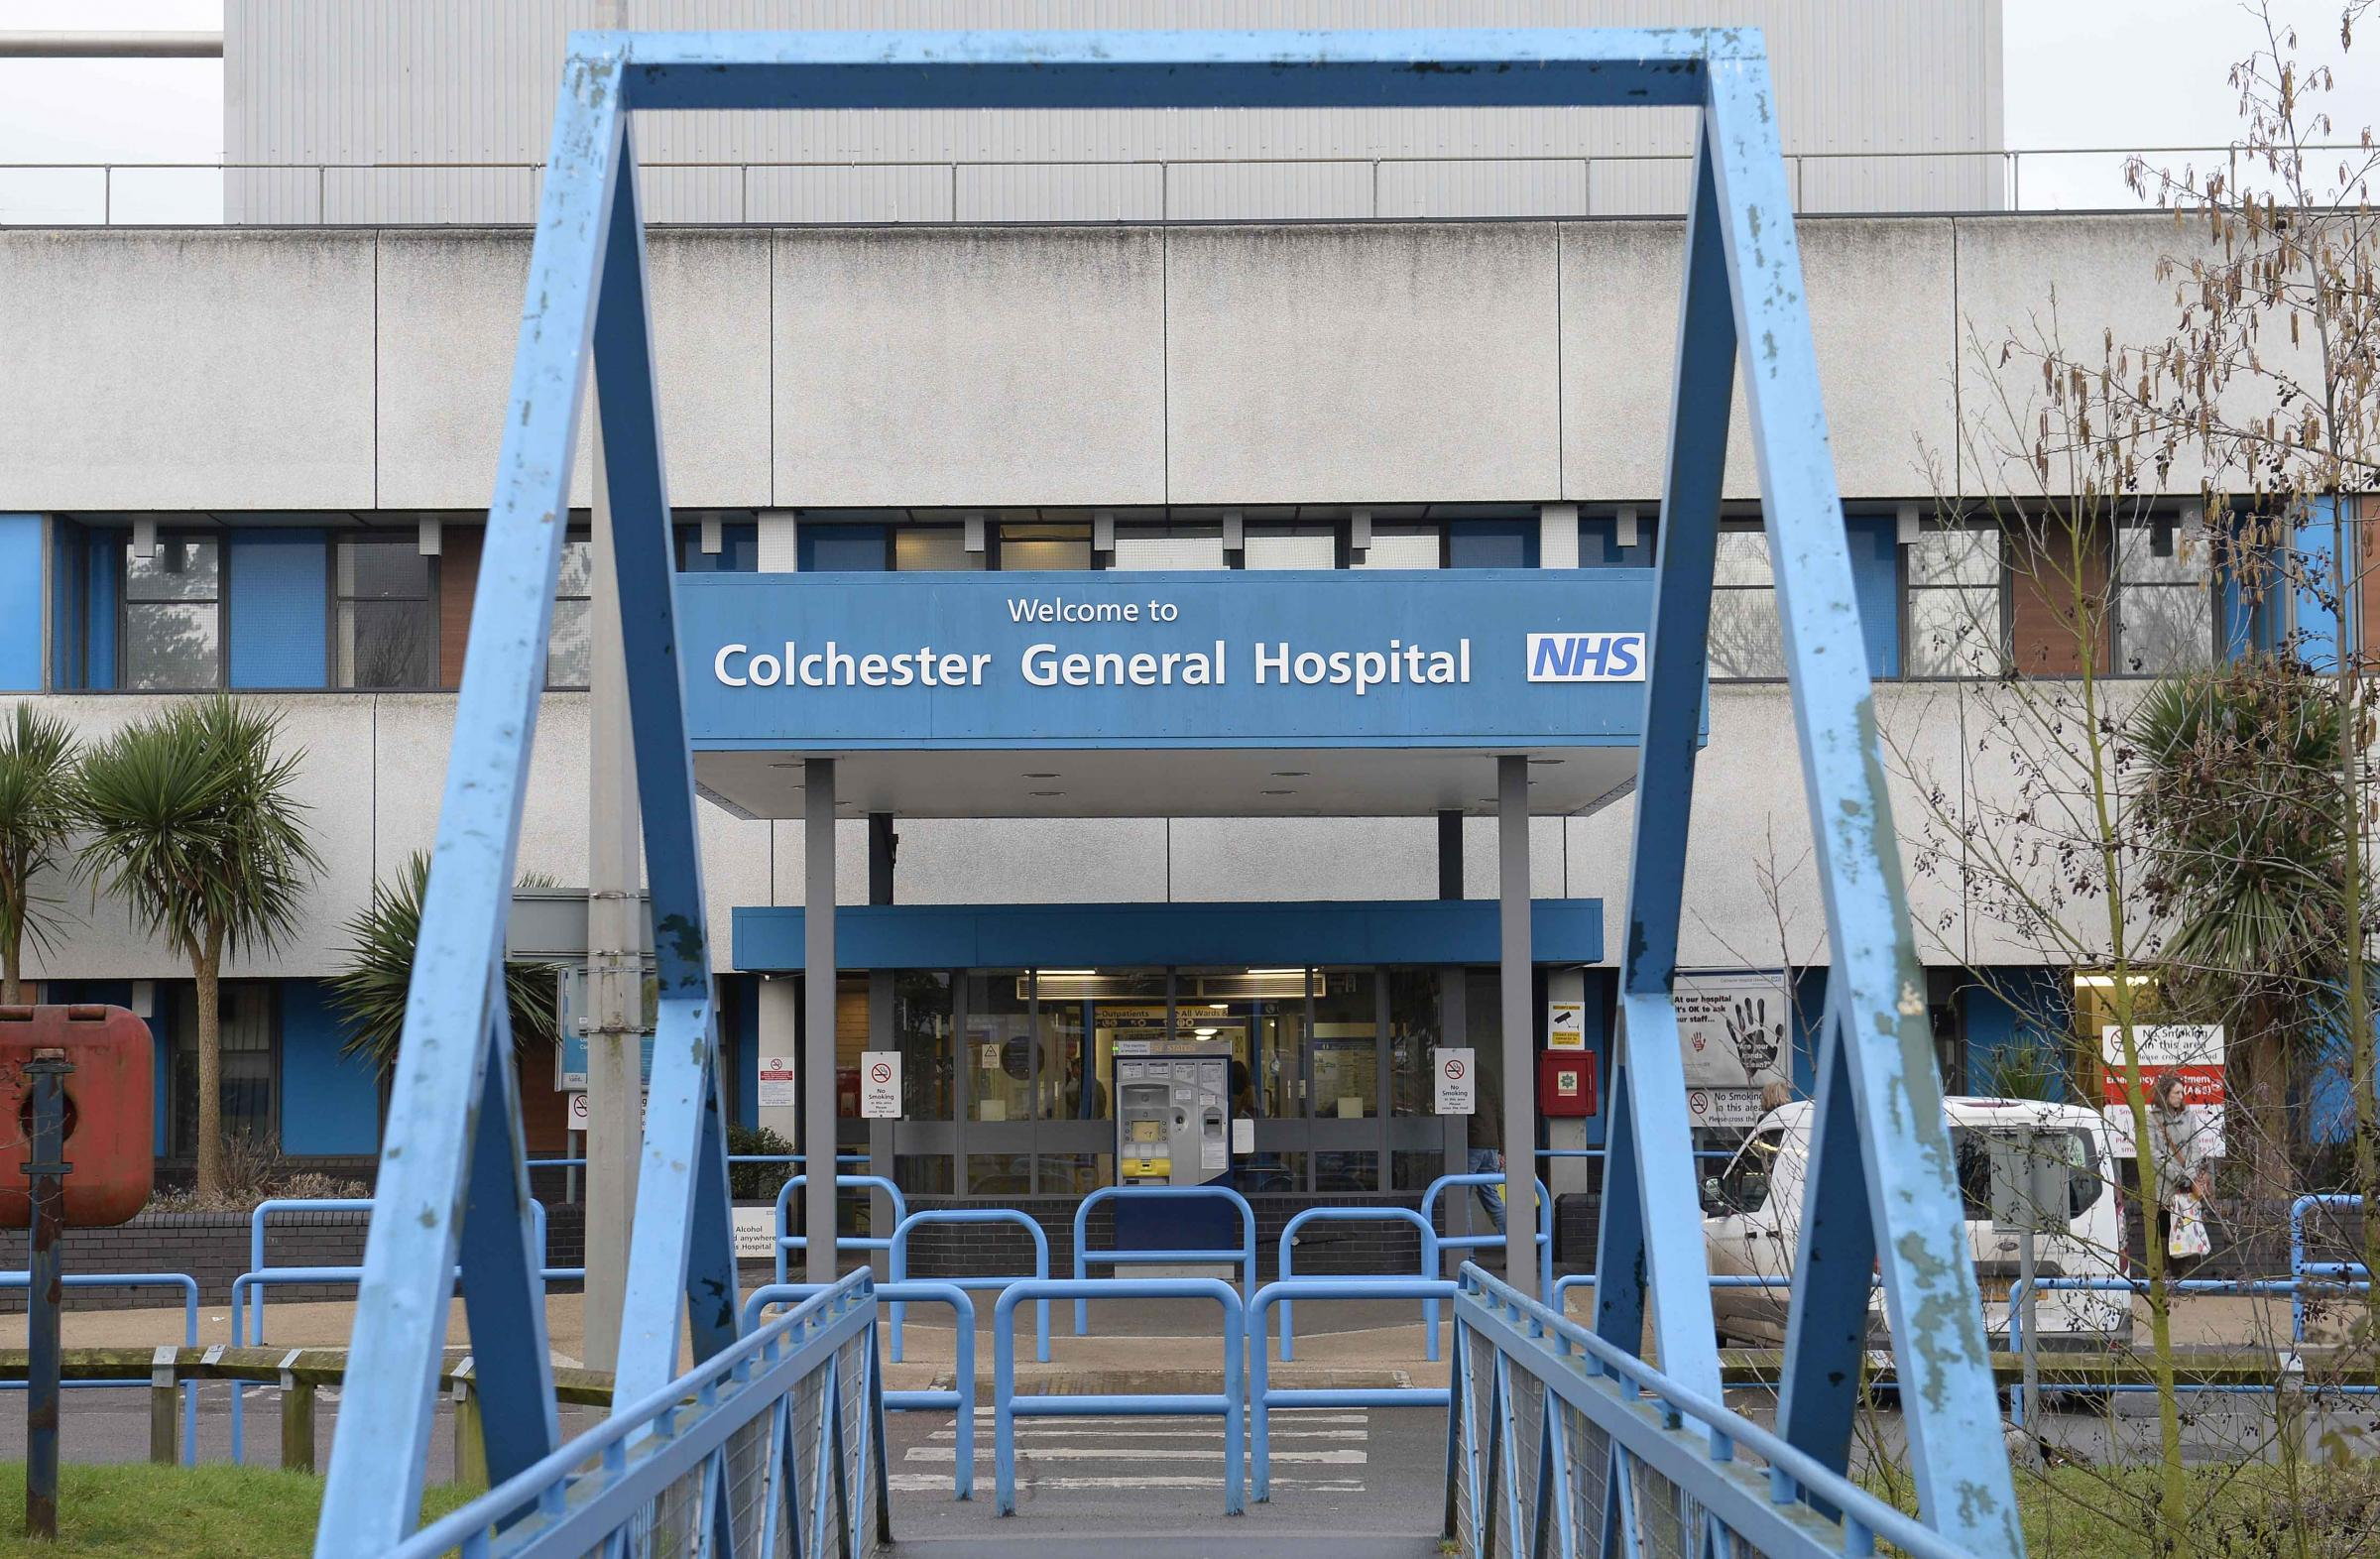 Have your say on the pending merger of Colchester and Ipswich hospitals